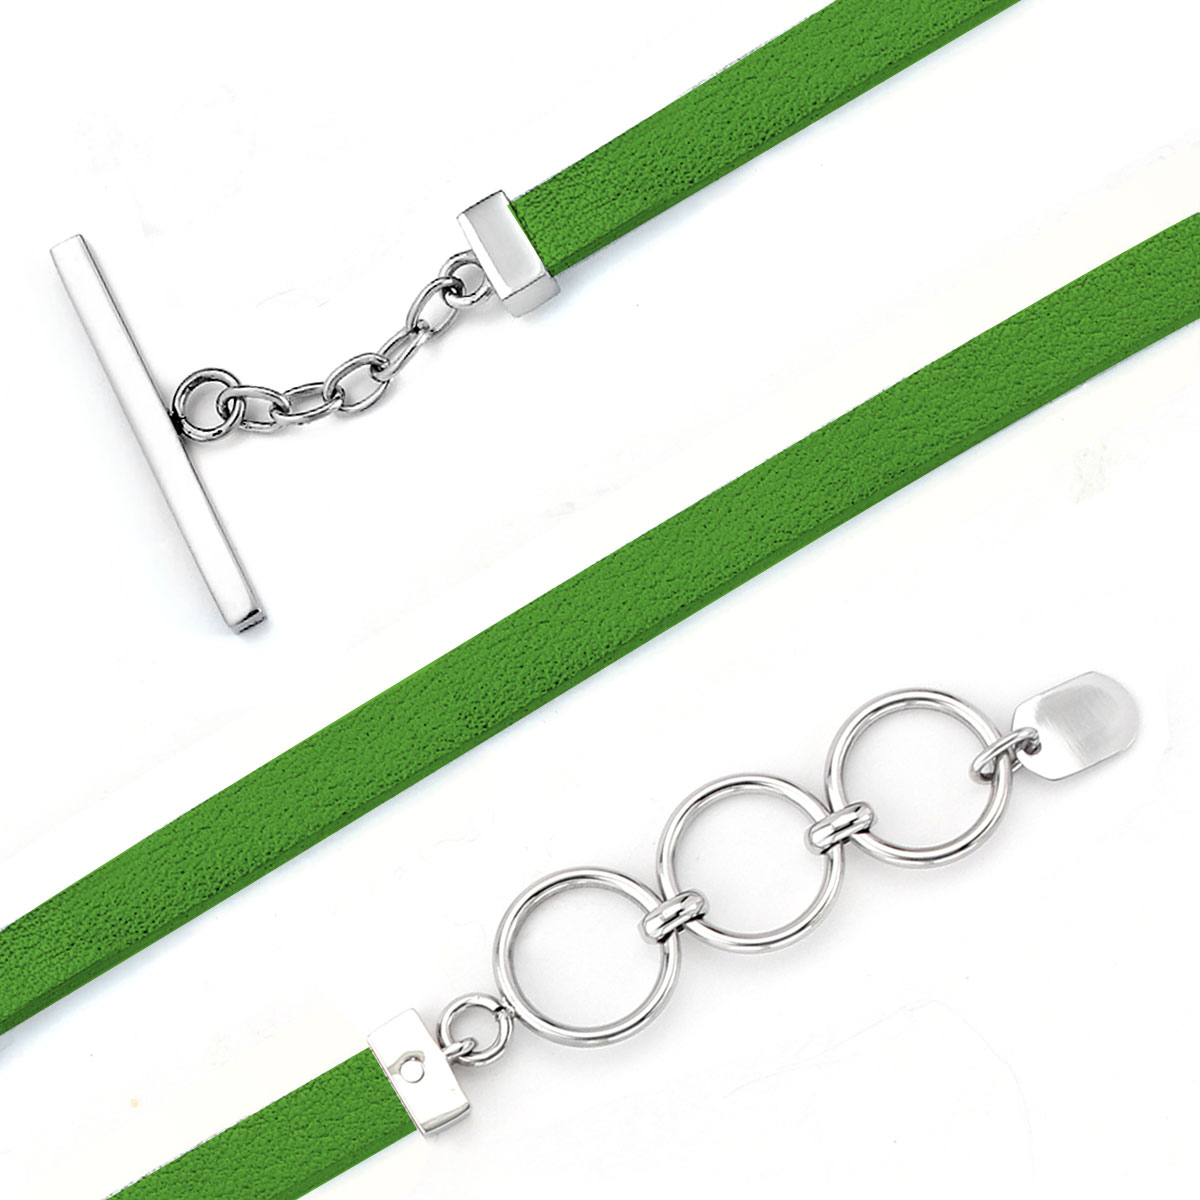 343209-Lori Bonn Go On Green! Leather Bracelet RETIRED ONLY 4 LEFT!